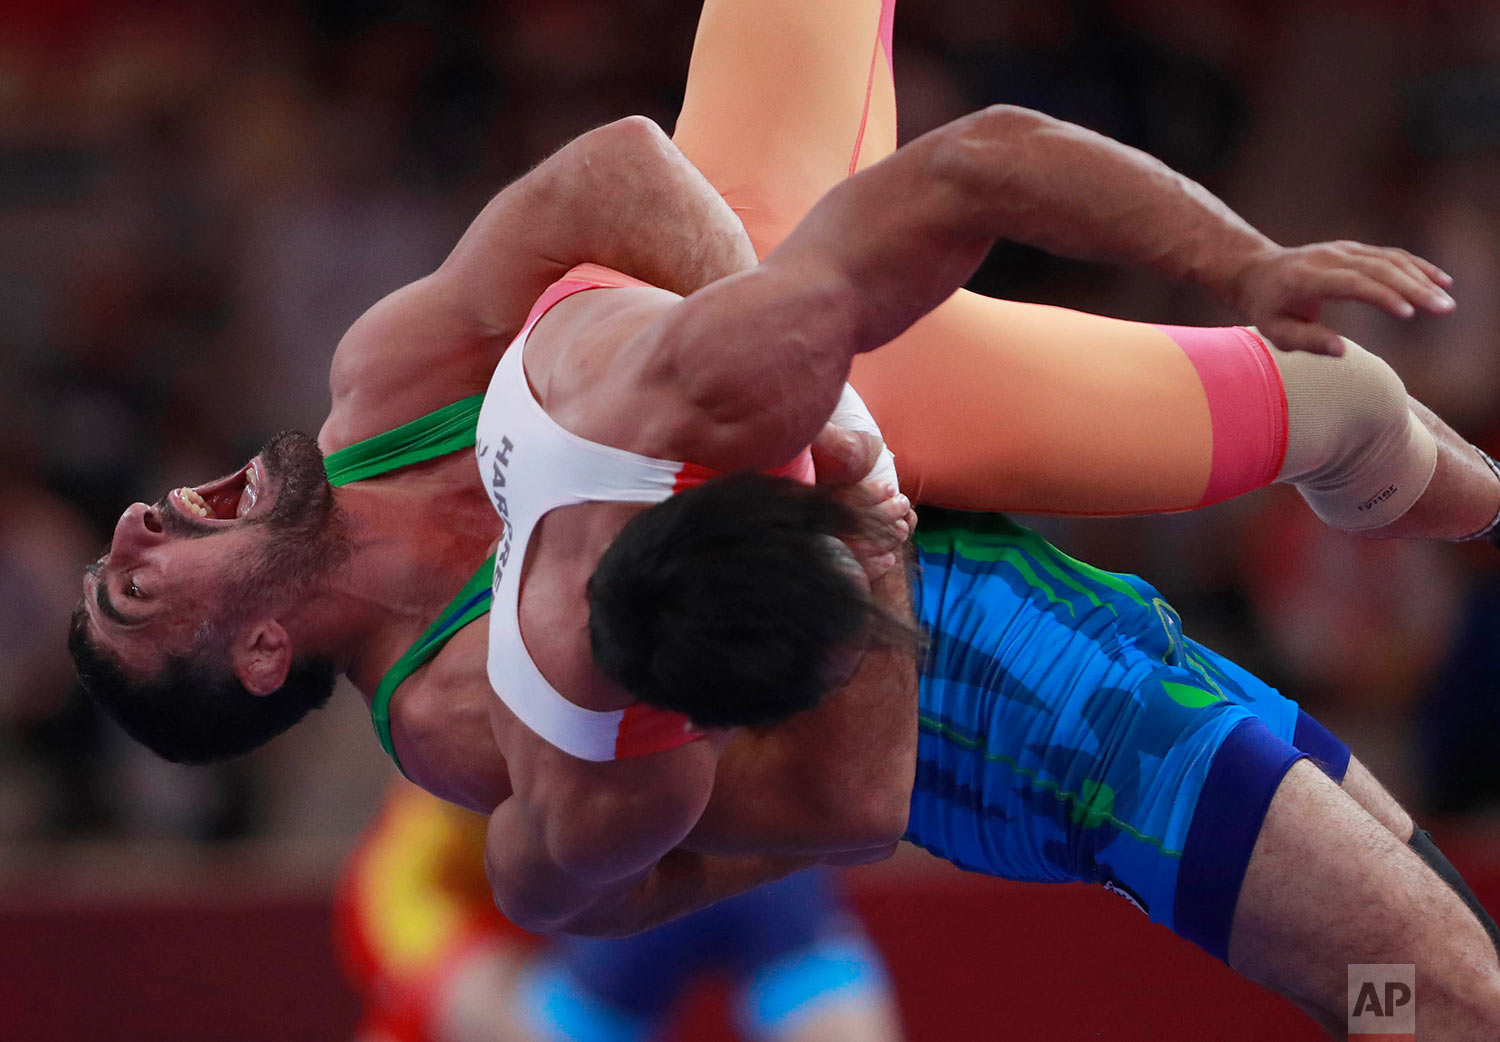 Uzbekistan's Rustam Assakalov, in blue,compete India's Harpreet Singh during their men's Greco-Roman 87-kilogram semi final wrestling match at the 18th Asian Games in Jakarta, Indonesia, Wednesday, Aug. 22, 2018.(AP Photo/Tatan Syuflana)